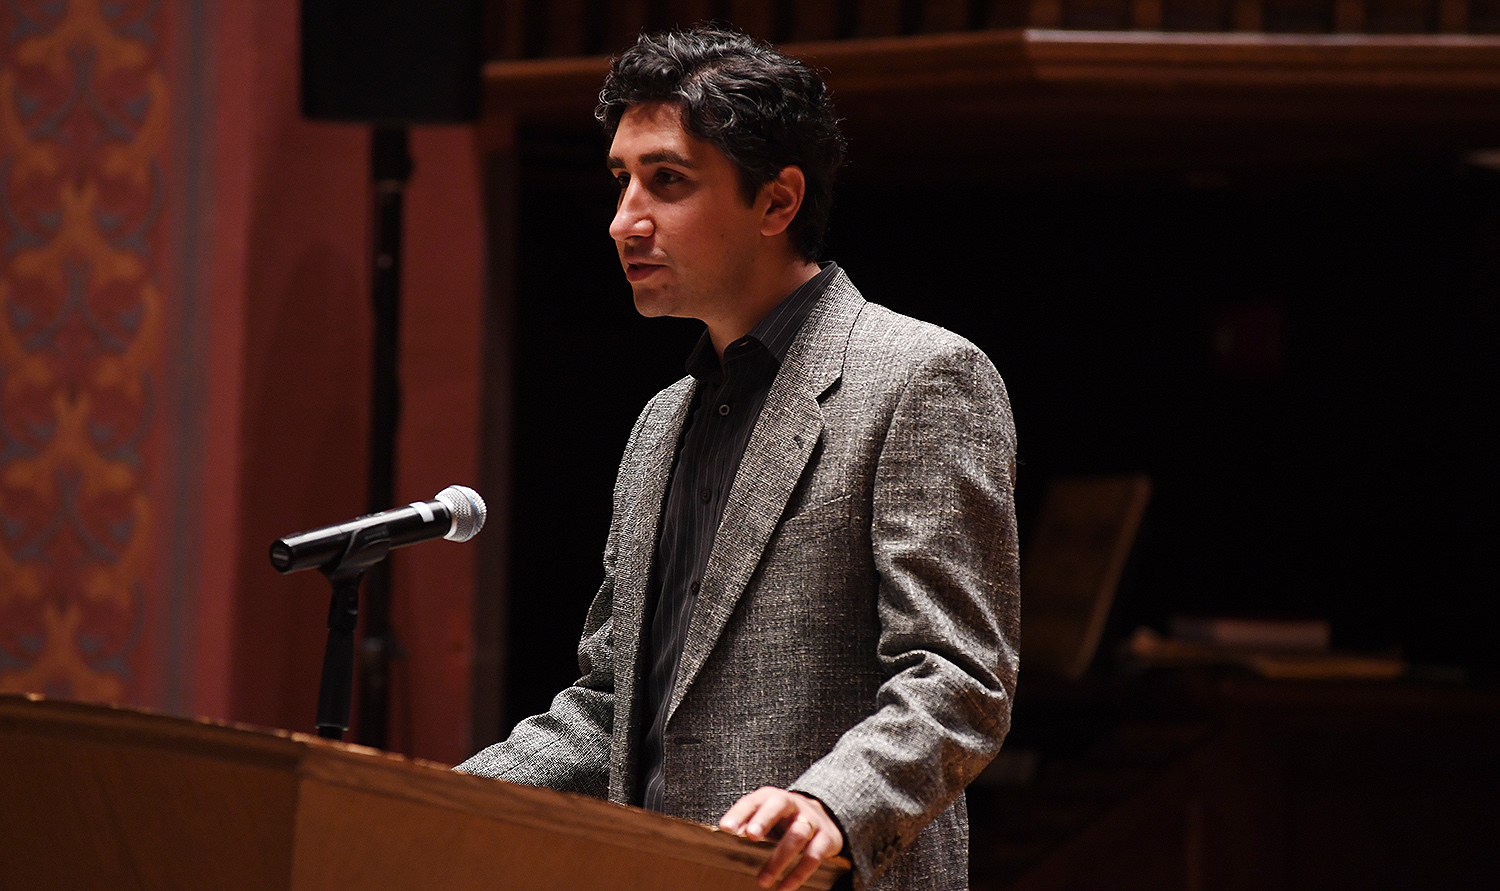 Tushar Irani, associate professor of philosophy, associate professor of letters, also focuses his research on ancient Greek and Roman philosophy. He has interests in questions of philosophical method, the history and practice of rhetoric, ancient Greek and Roman literature, Plato and the history of ethics.